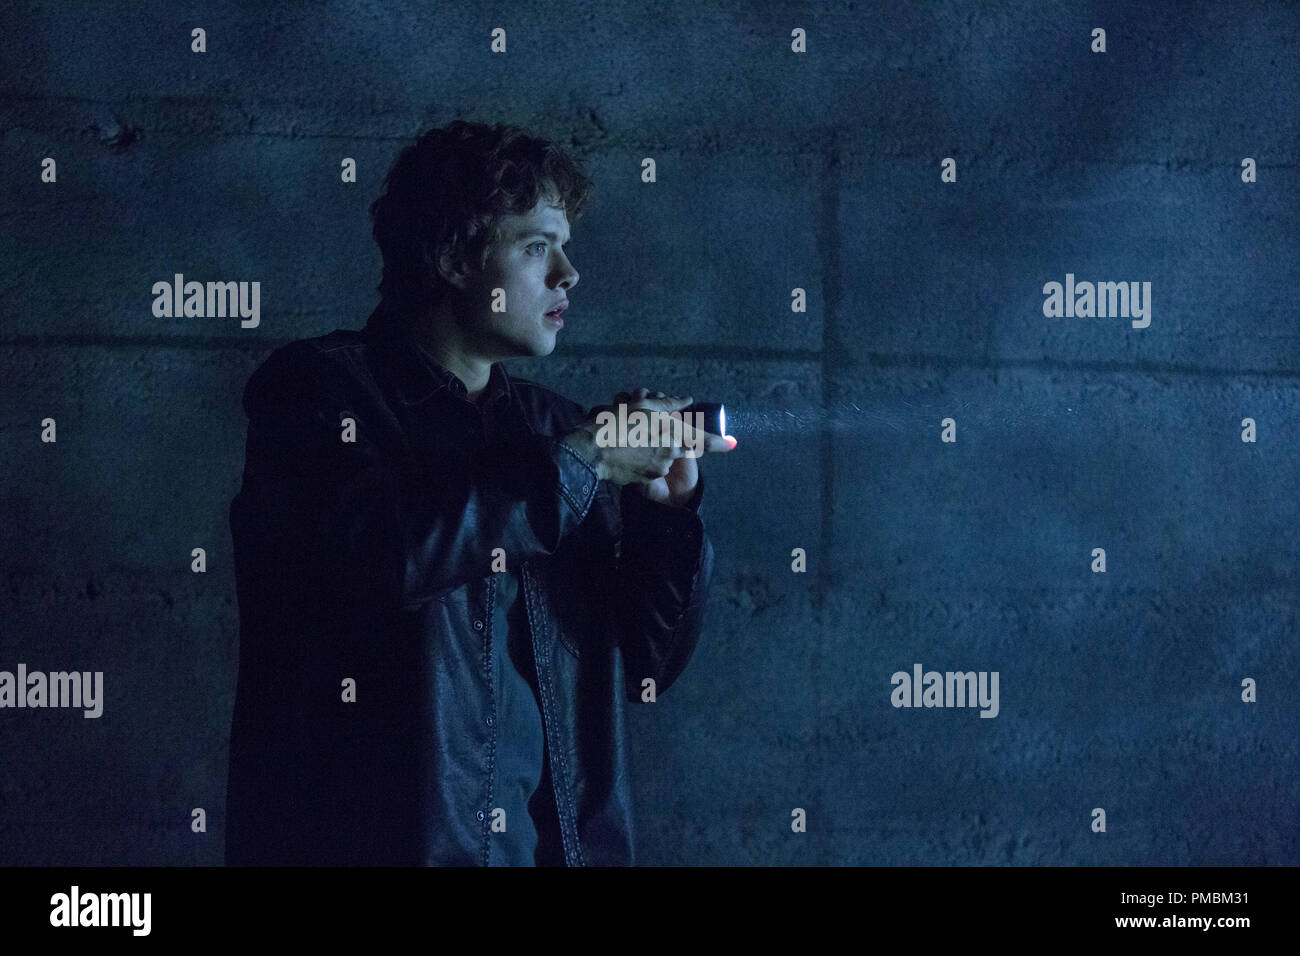 DOUGLAS SMITH stars as Pete in 'Ouija', a supernatural thriller about a group of friends who must confront their most terrifying fears when they awaken the dark powers of an ancient spirit board. - Stock Image